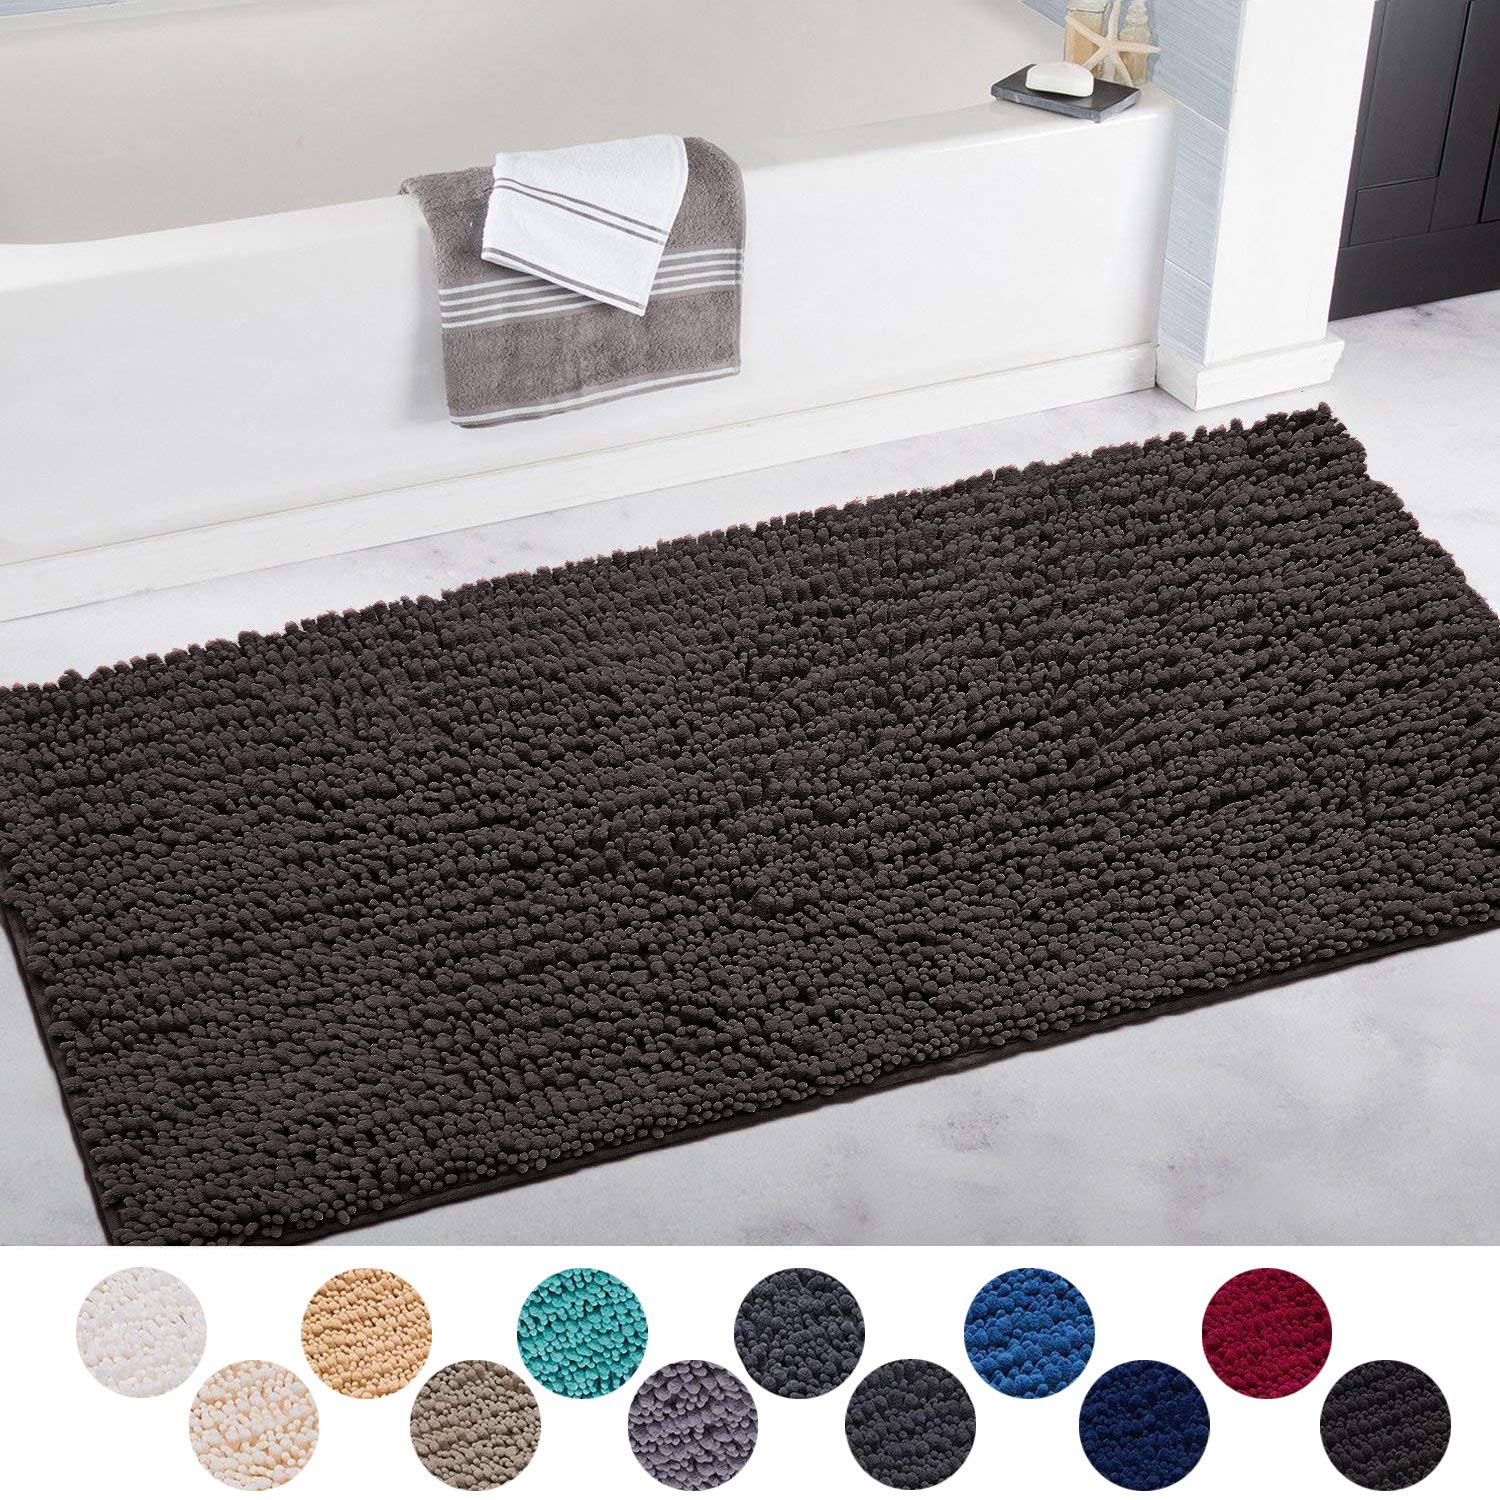 DEARTOWN Non-Slip Shaggy Bathroom Rug,Soft Microfibers Bath Mat with Water Absorbent, Machine Washable (31x59 Inches, Black)